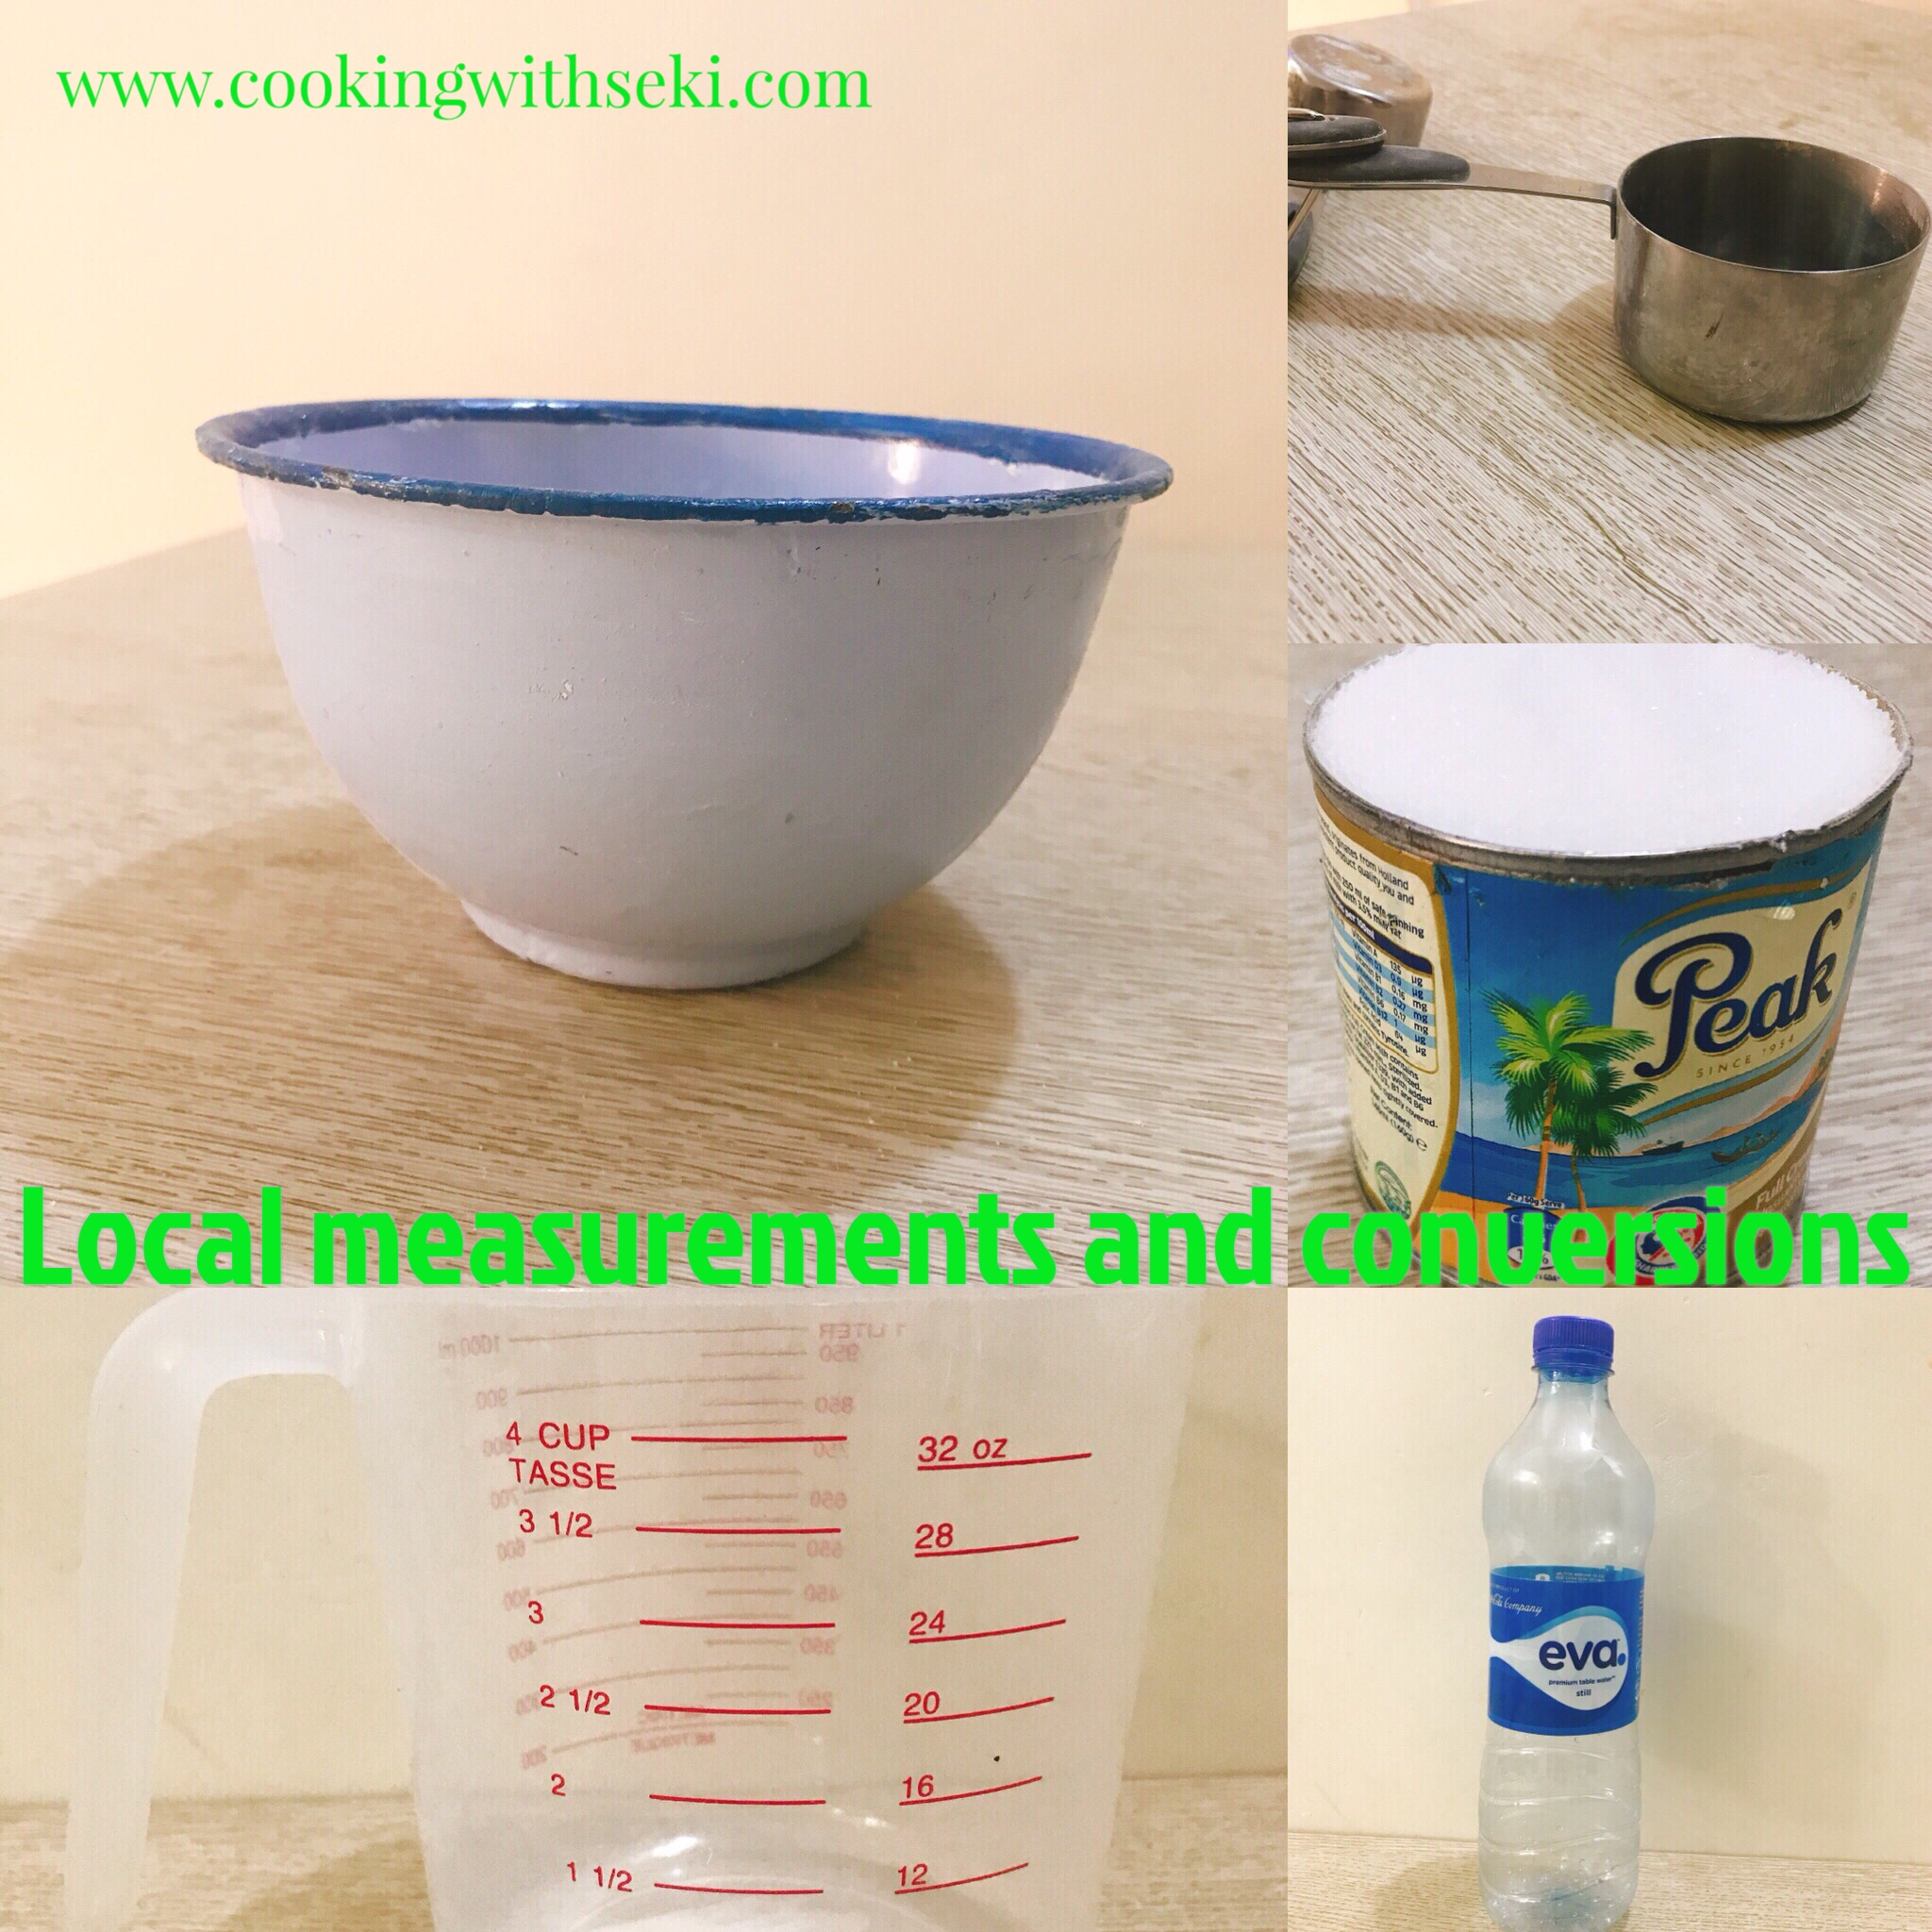 Local measurements and conversions excellent nigerian meals local conversions nvjuhfo Image collections